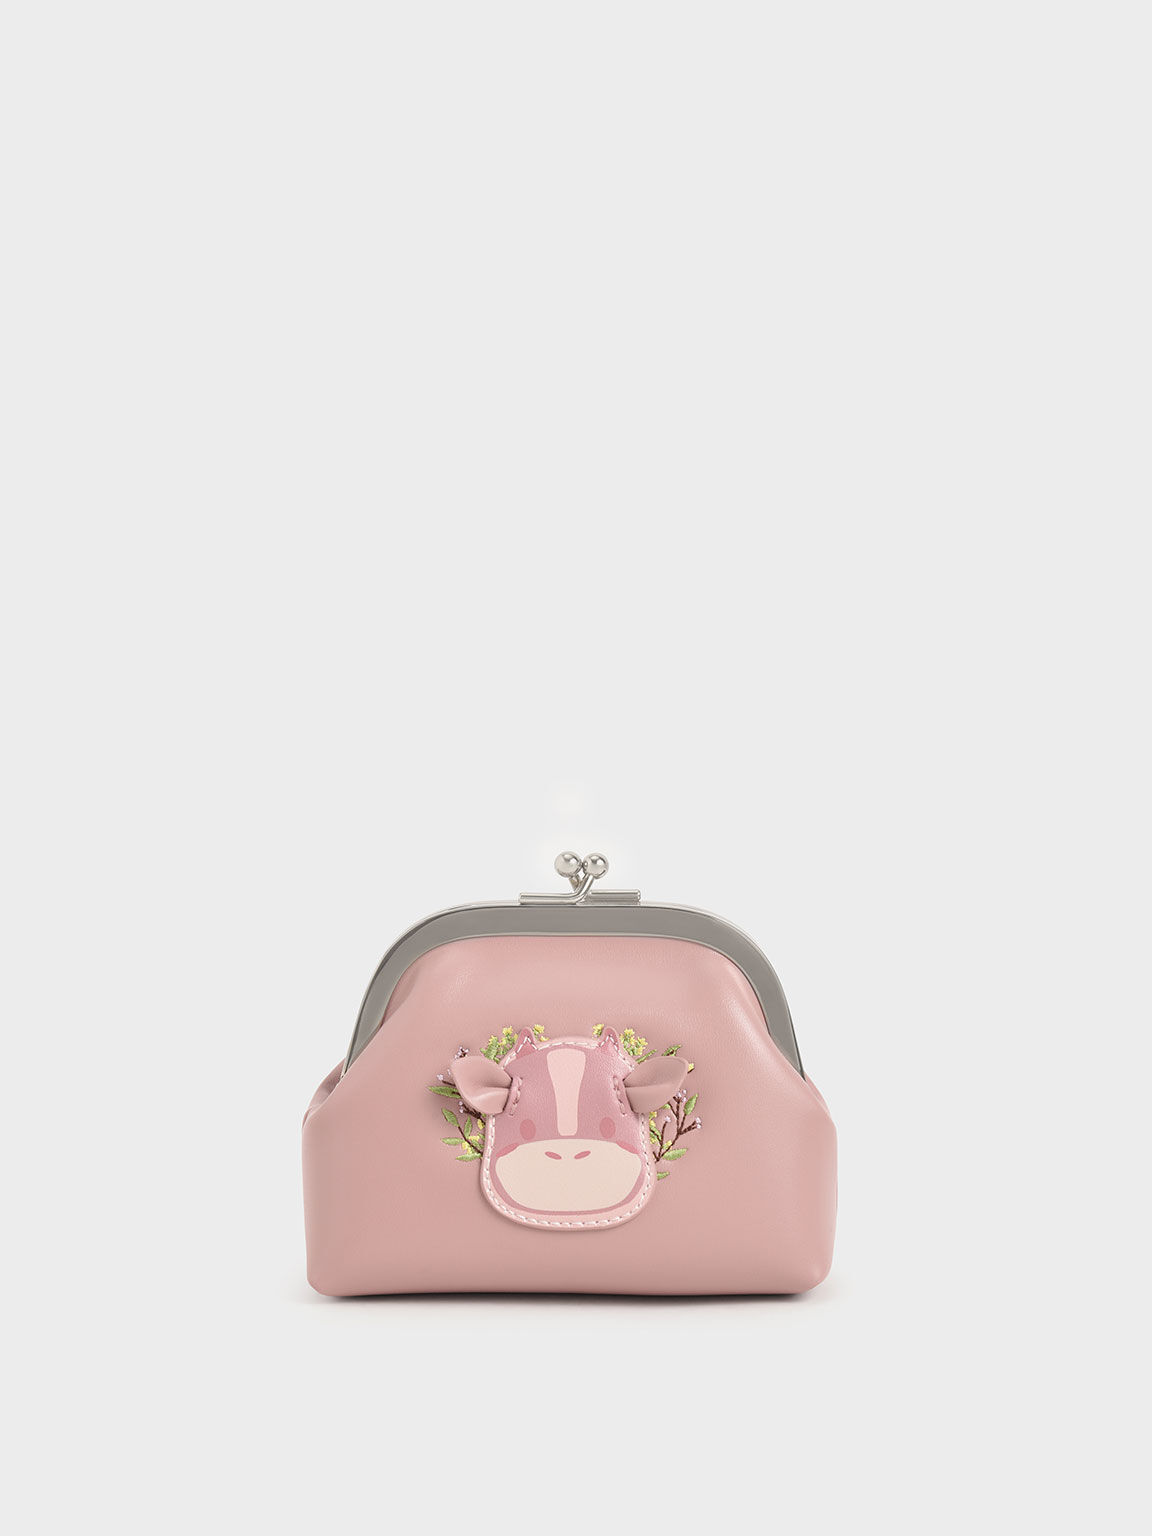 Girls' Cow Motif Pouch, Pink, hi-res